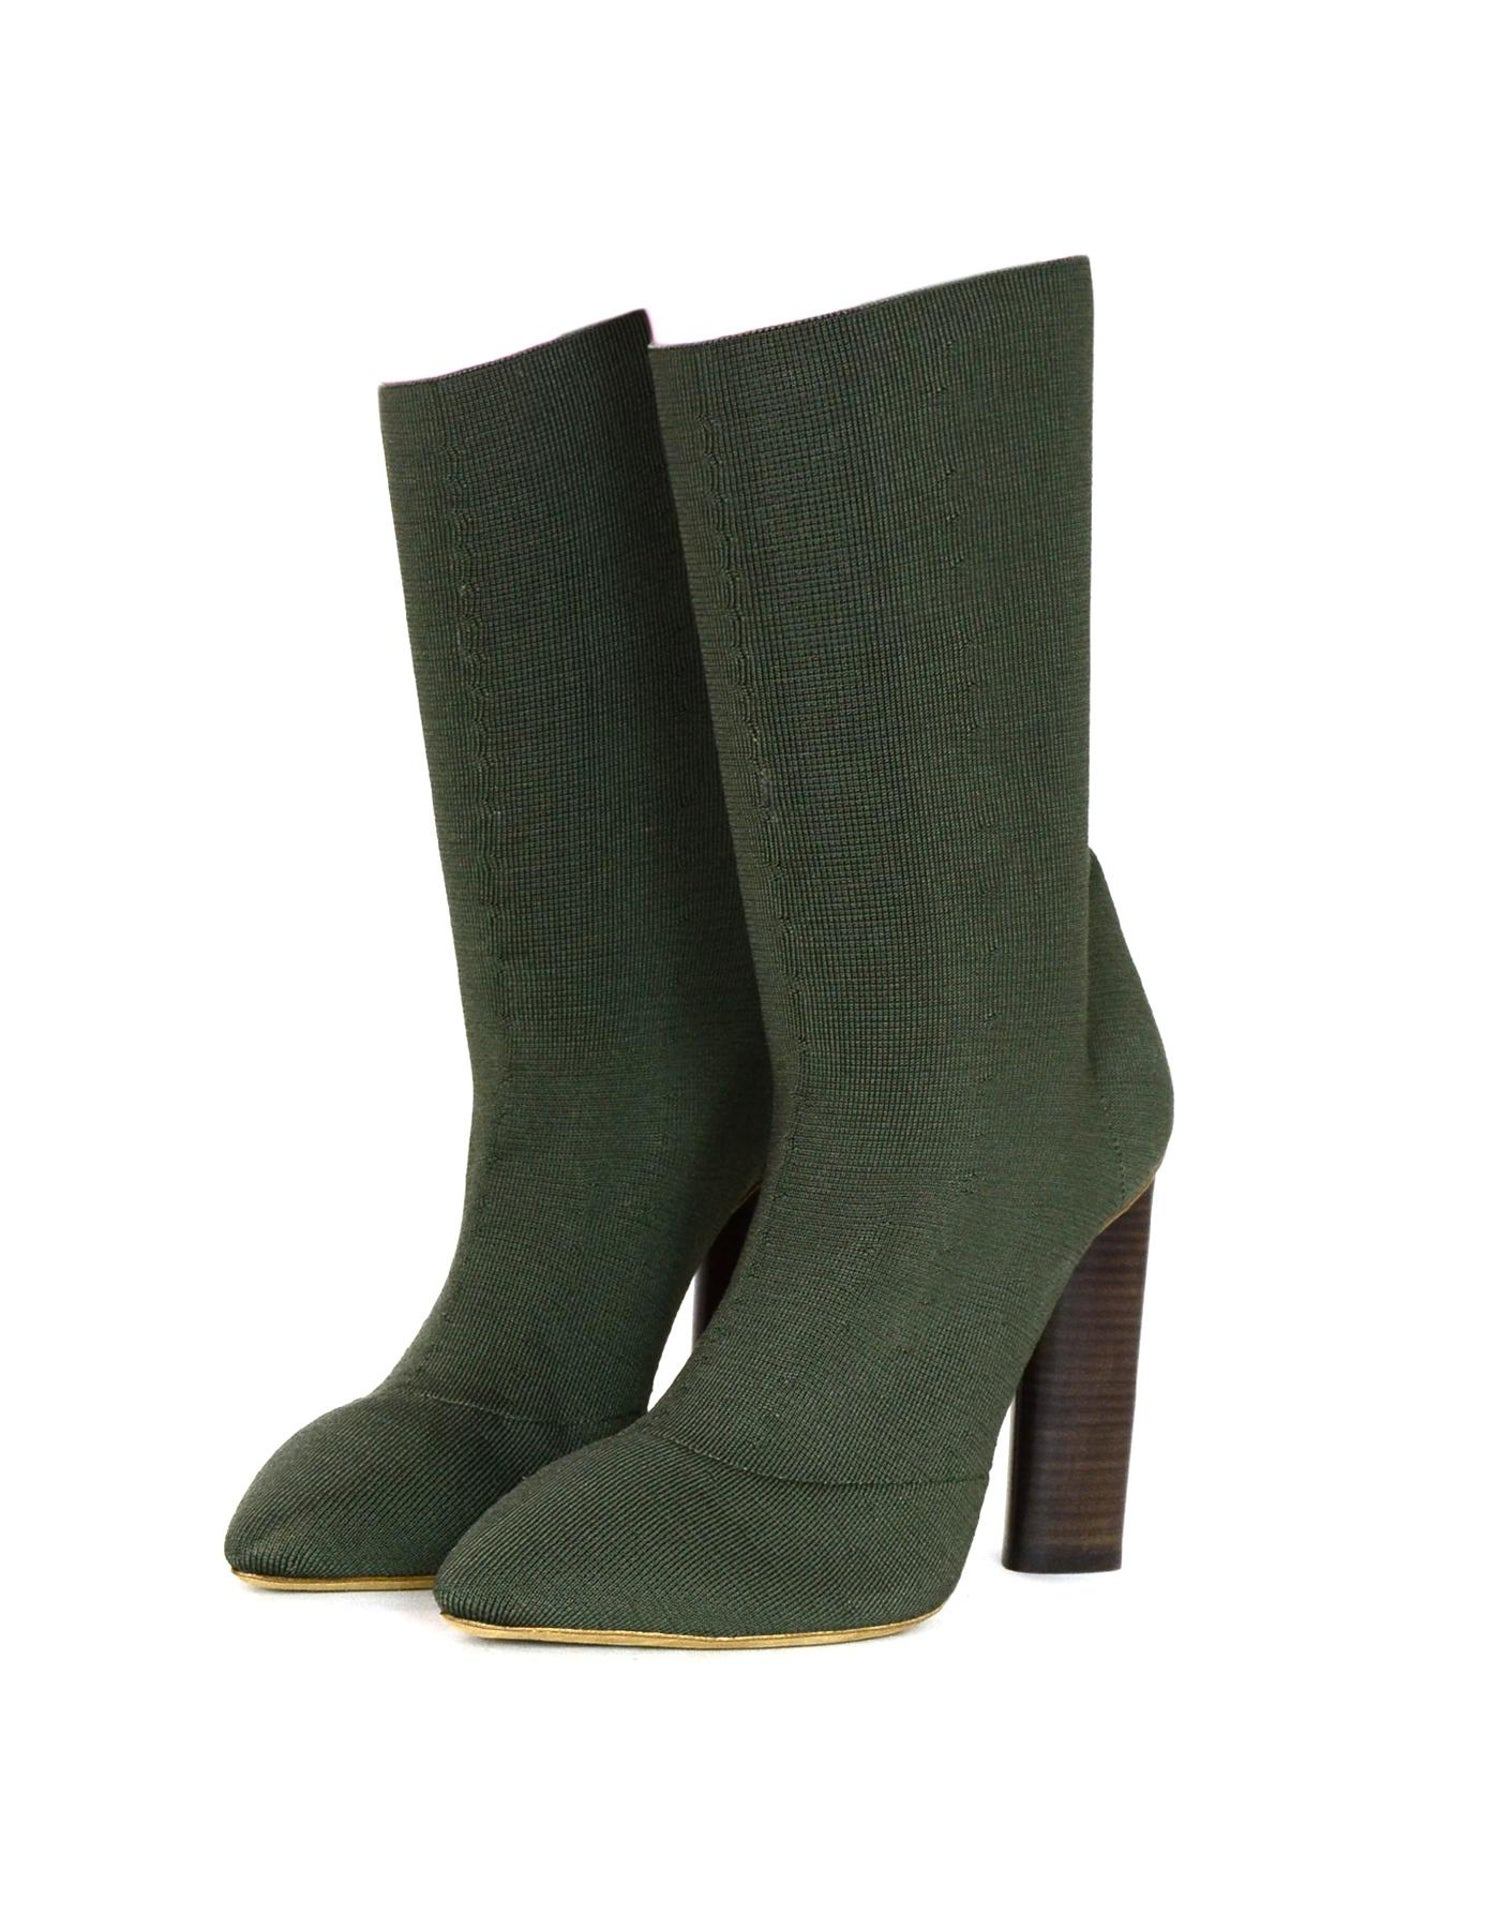 9bde6802fab8e Yeezy Season 2 Olive Green Sock Boots Sz 39.5 For Sale at 1stdibs